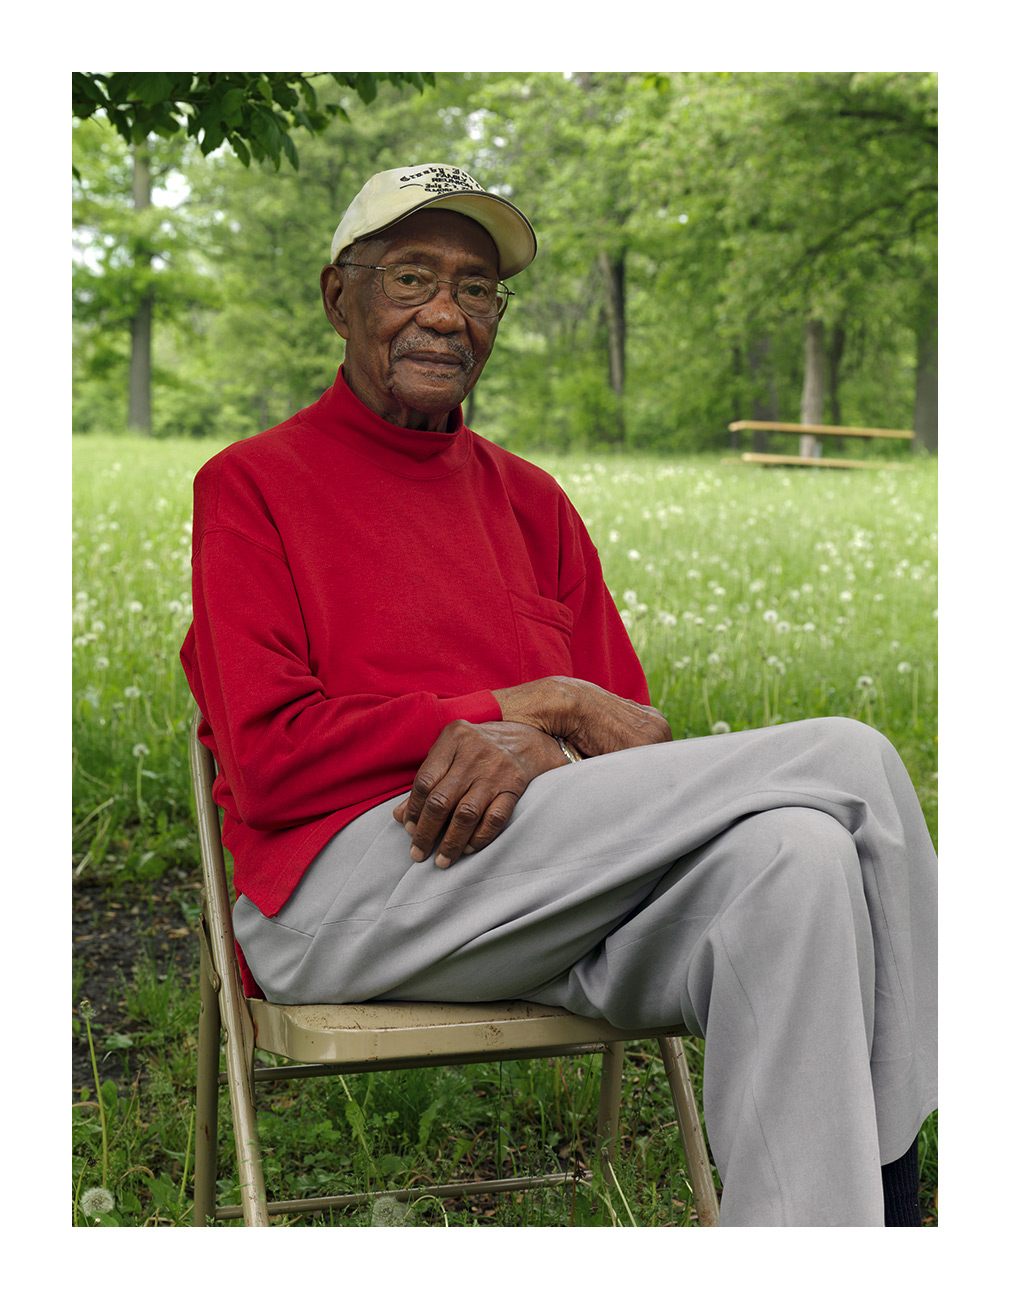 George, an 89 Year Old Retired Chrysler Worker Picnicing in Belle Isle Park, Detroit 2011